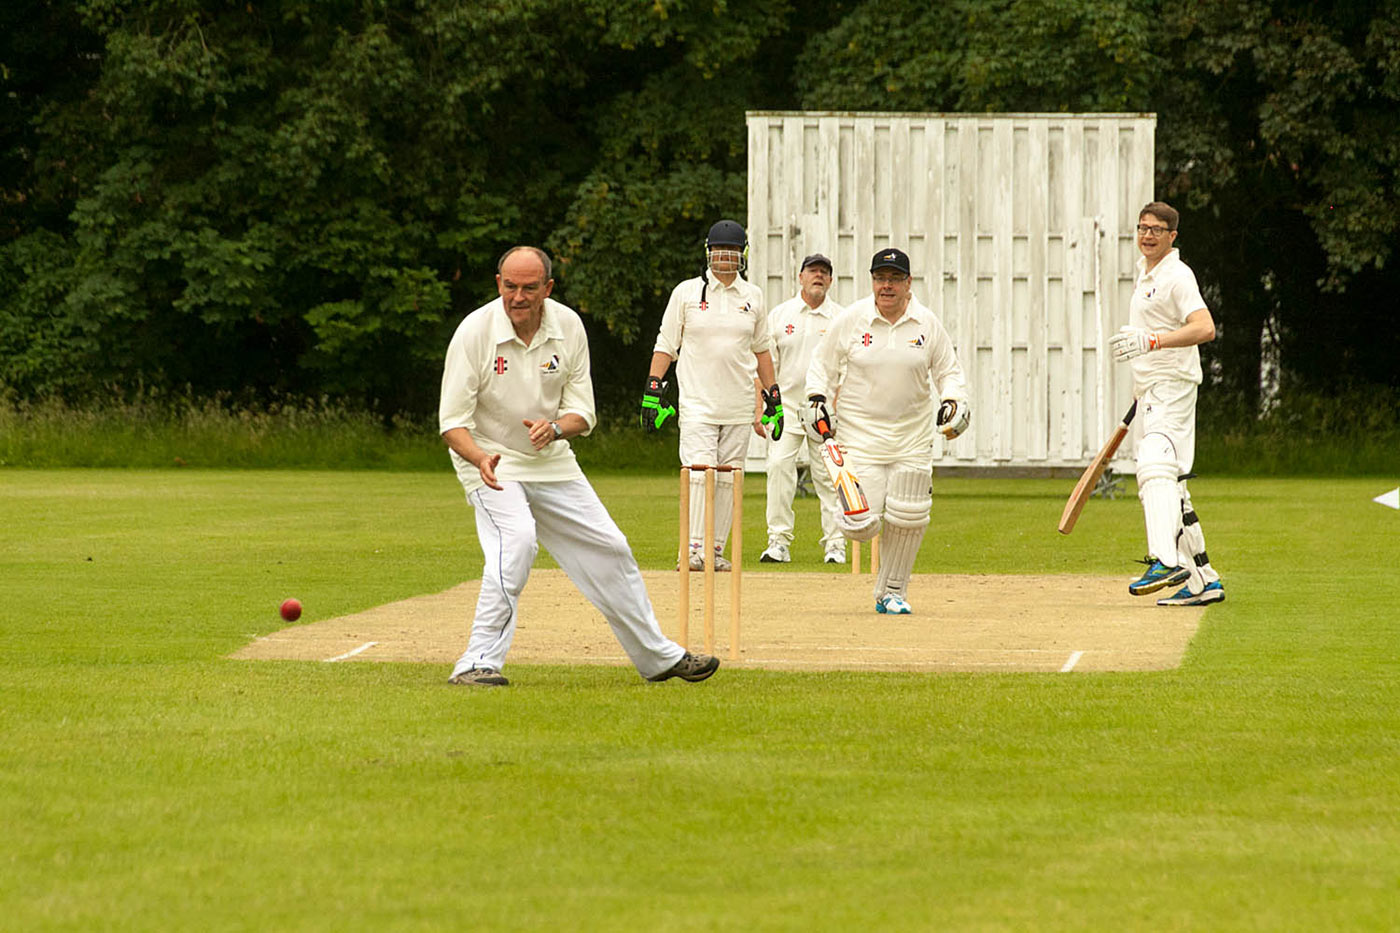 The senior tutor contemplates, commences and completes a run while his partner, regardless of his own safety, watches anxiously from half-way down the wicket